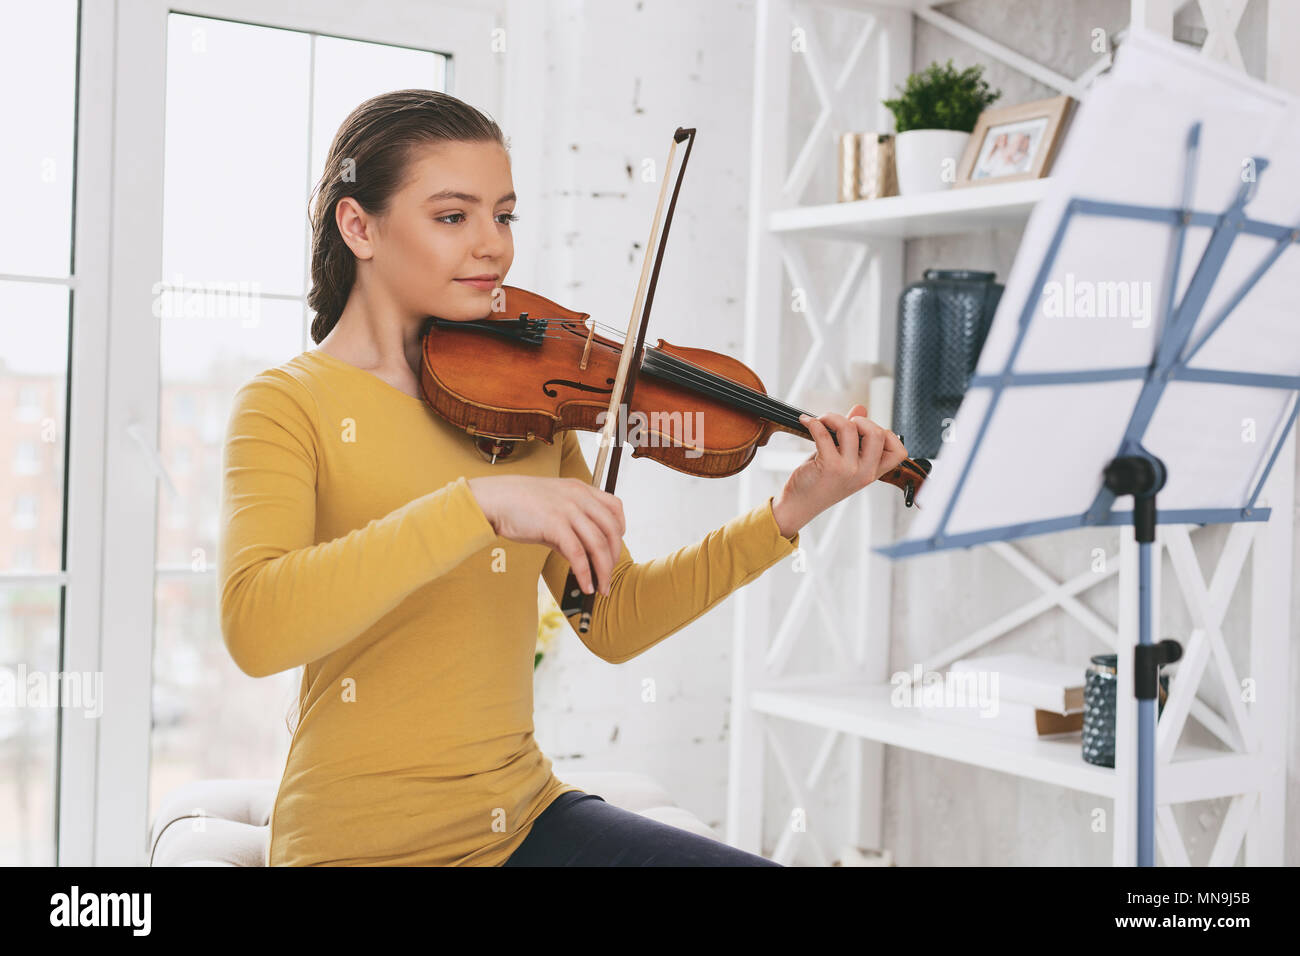 Attentive violinist looking at notes - Stock Image